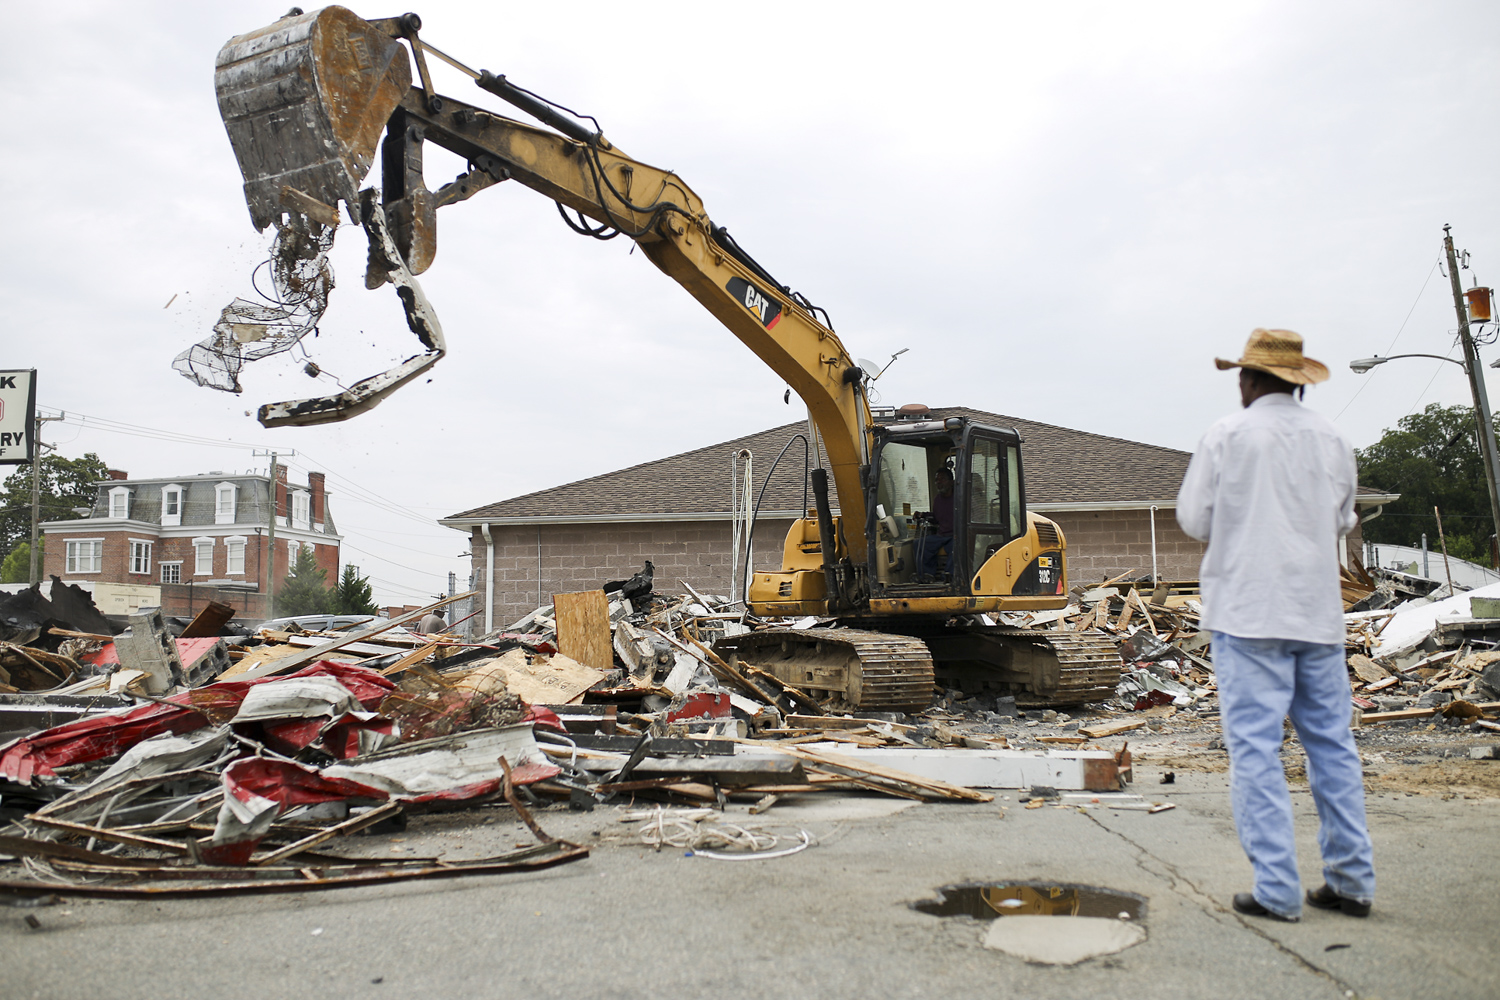 Joe Chamberlain, right, from Petersburg, a worker with Jones Trucking and Hauling, watches machine operator Ernest Jones demolish the Jays tire shop that once stood for years on the corner of Wythe and N. Sycamore Streets in Petersburg on Monday, August 14, 2017. [Scott P. Yates/progress-index.com]